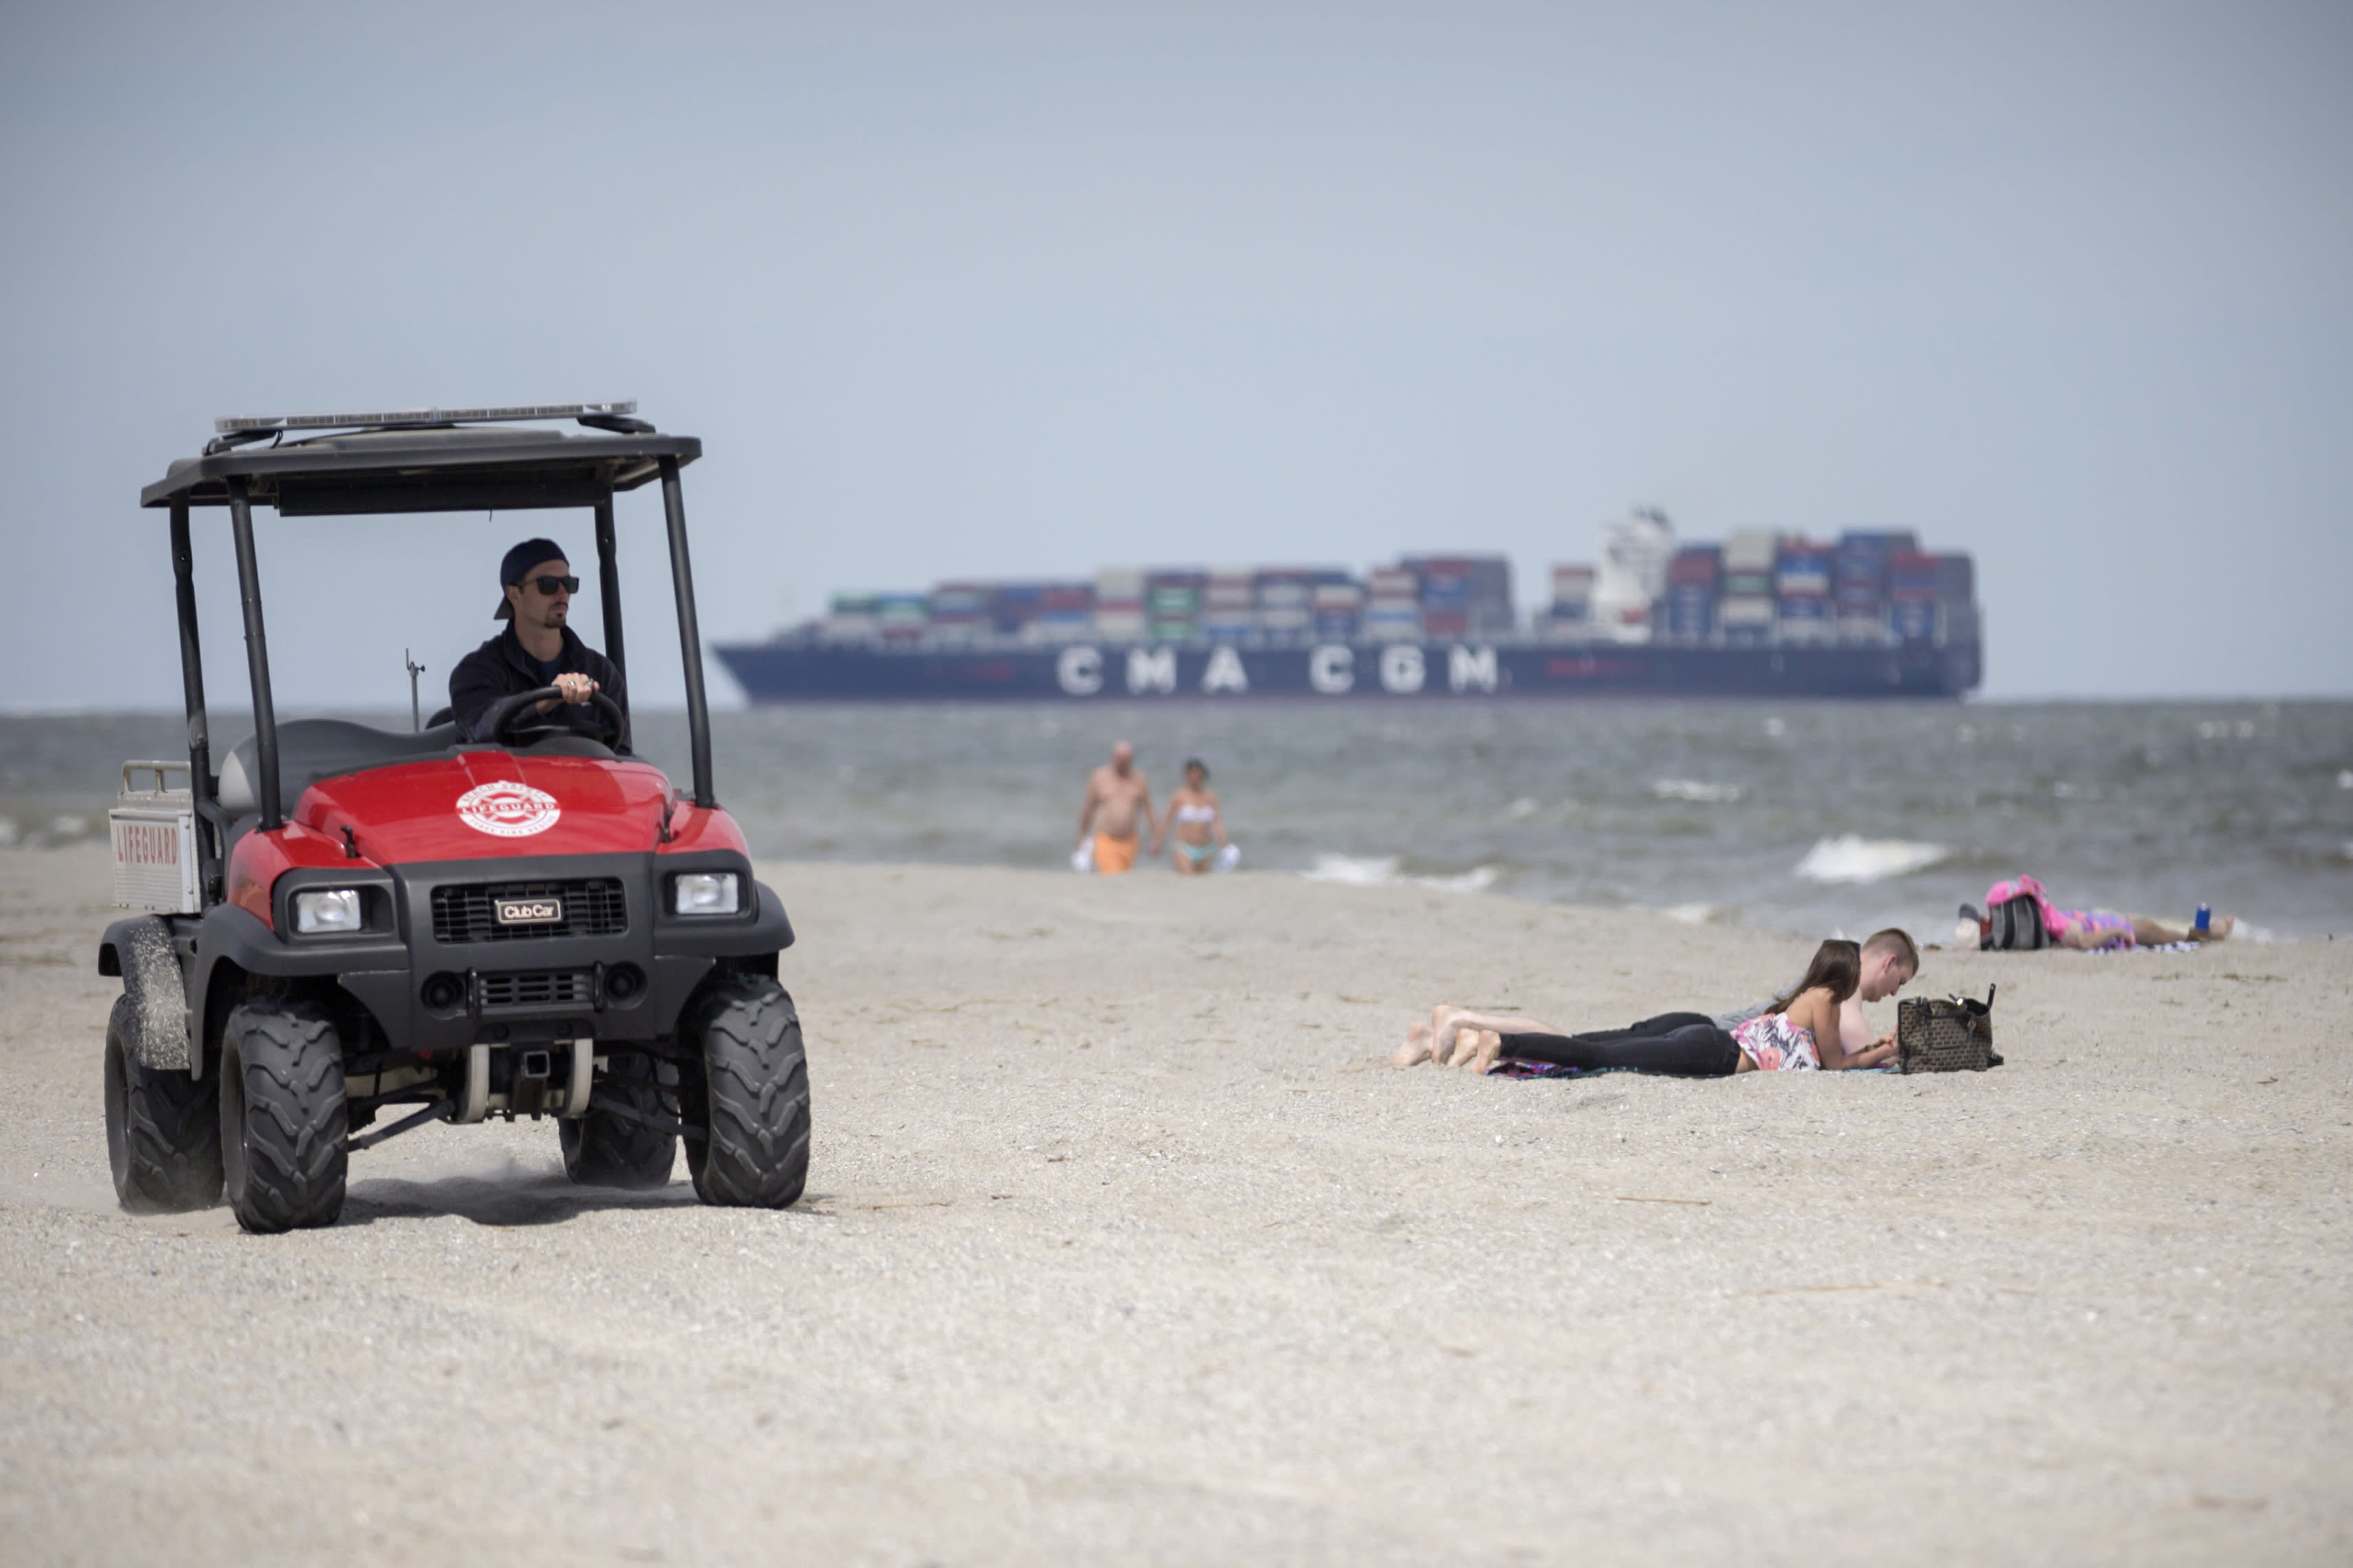 A member of the Tybee Island, Ga., Life Guards, left, patrols the beach on an ATV while visitors sunbathe on the sand after Gov. Bryan Kemp signed an executive order allowing people to exercise outside, with social distancing of at least six feet because of the coronavirus outbreak. (Stephen B. Morton/Atlanta Journal-Constitution via AP)